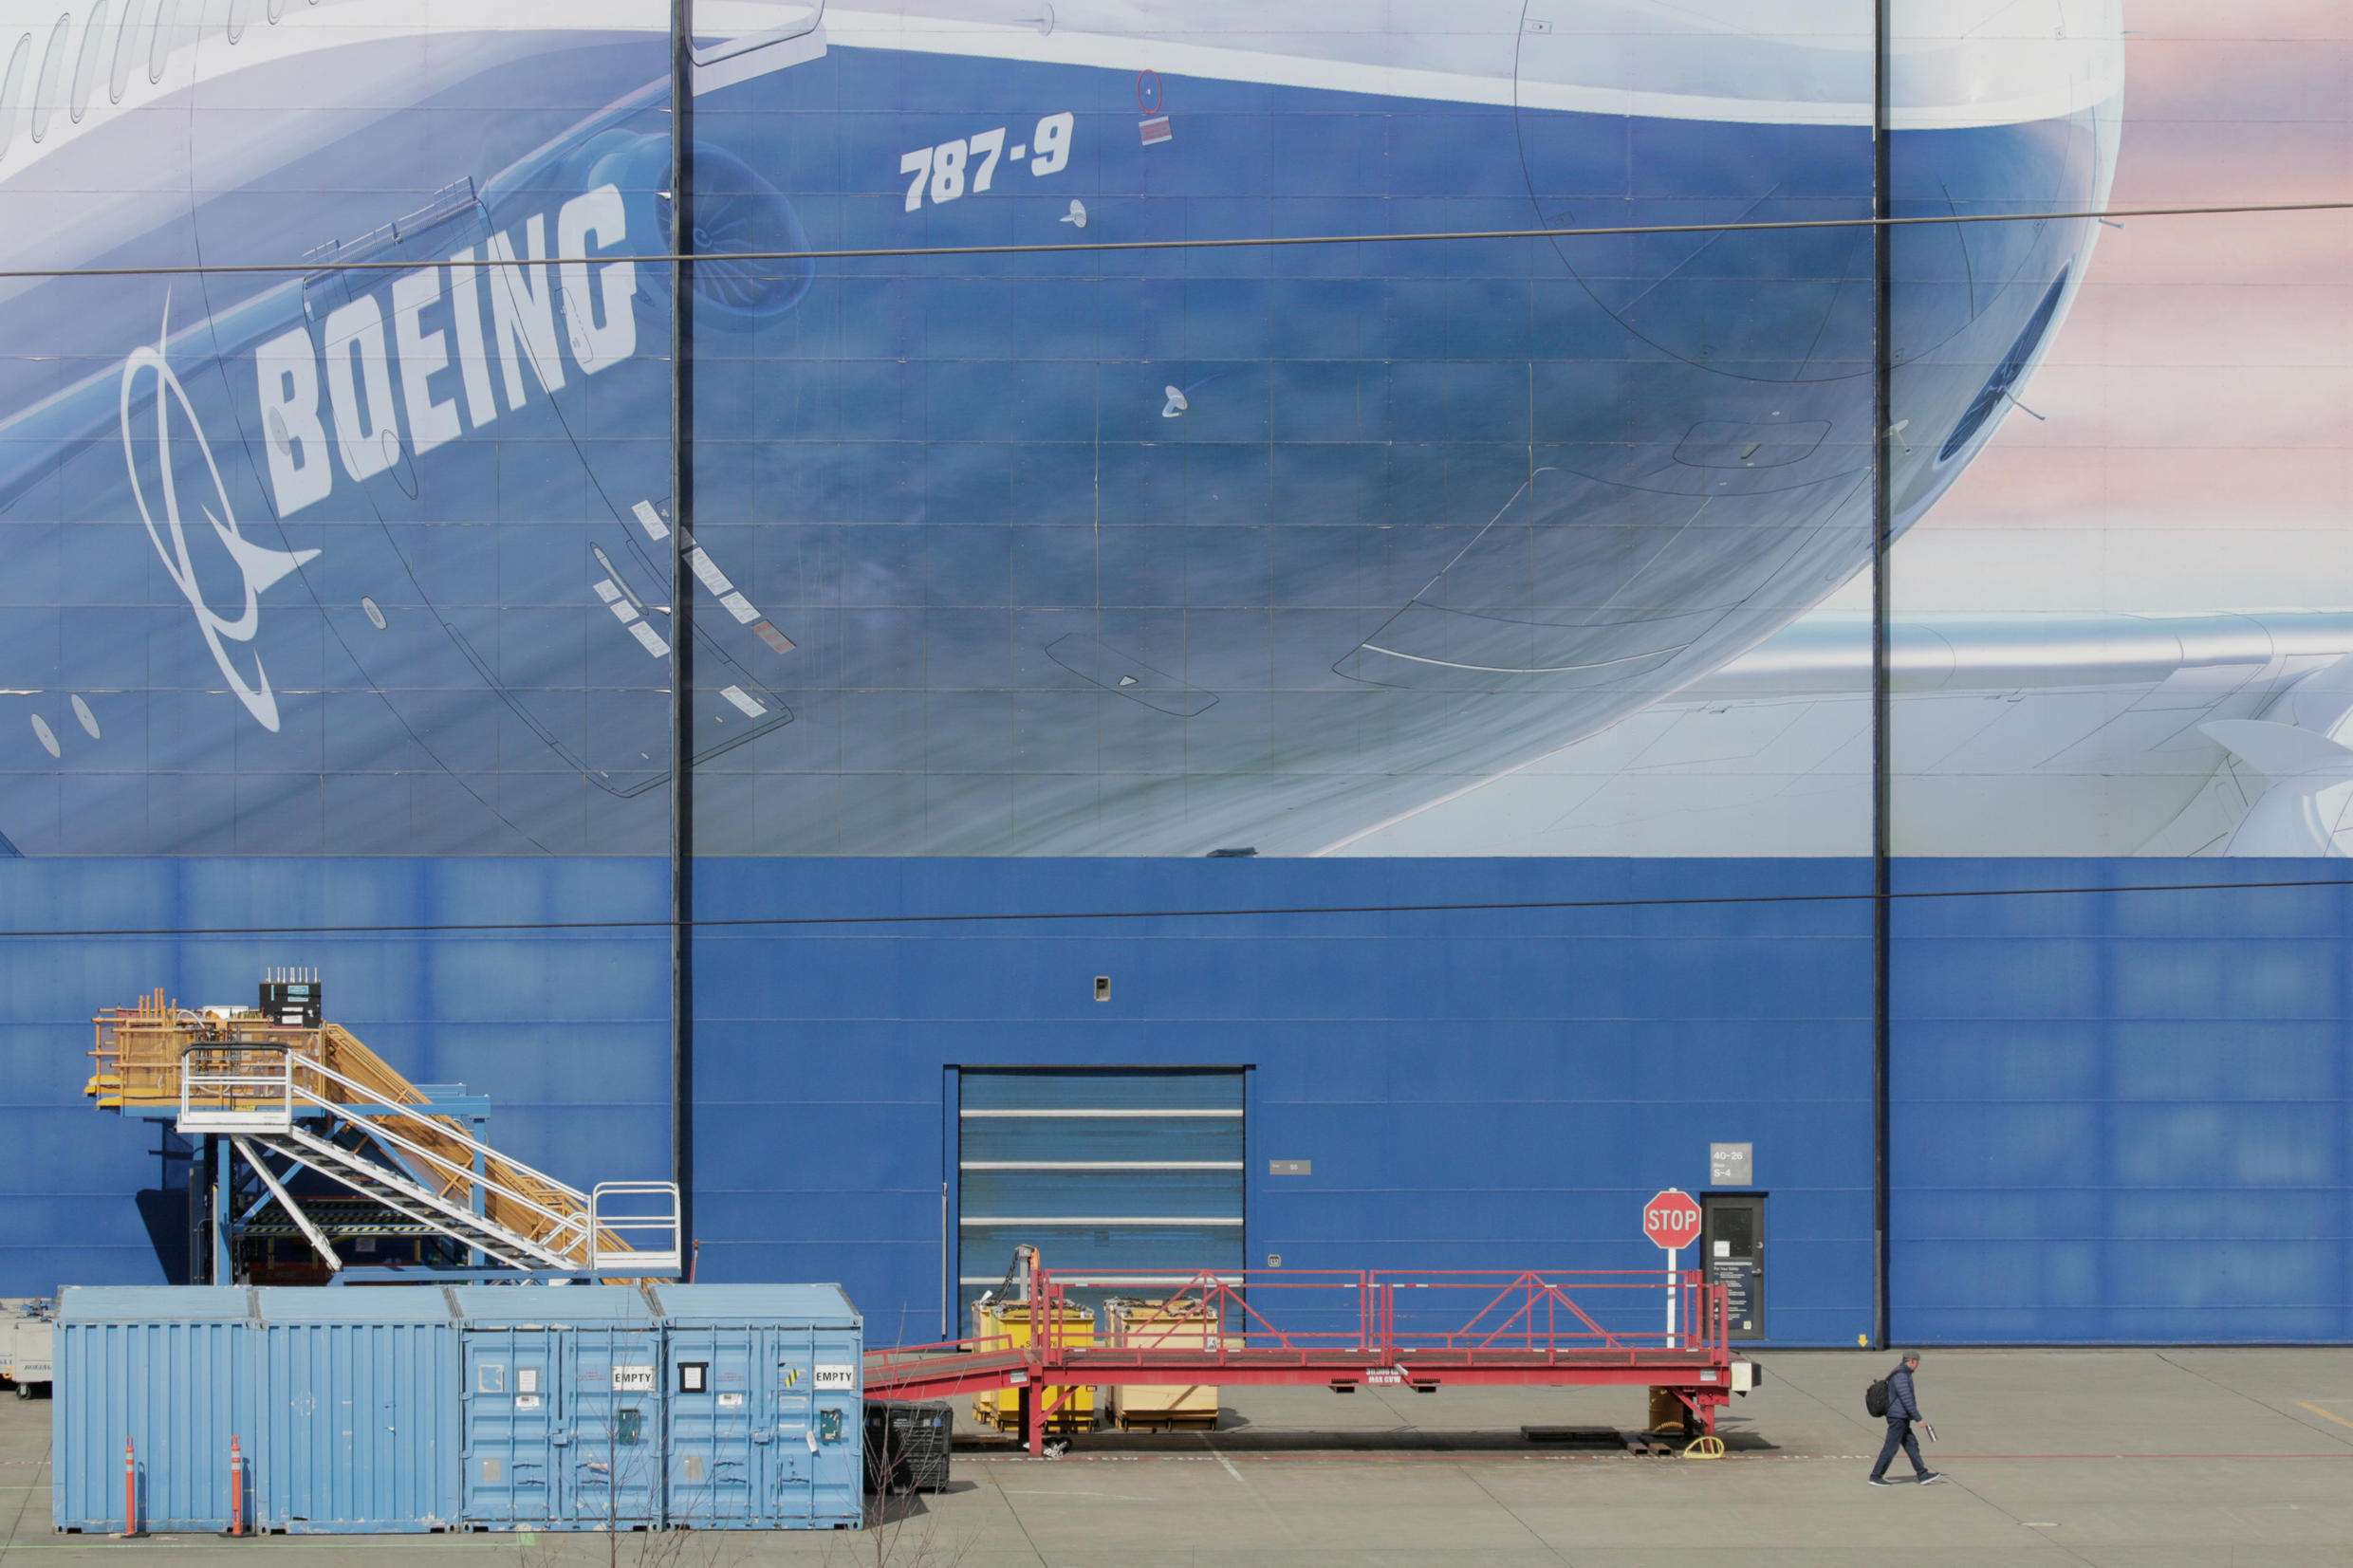 A worker leaves the Boeing Everett Factory in Everett, Washington state, US on March 23, 2020.